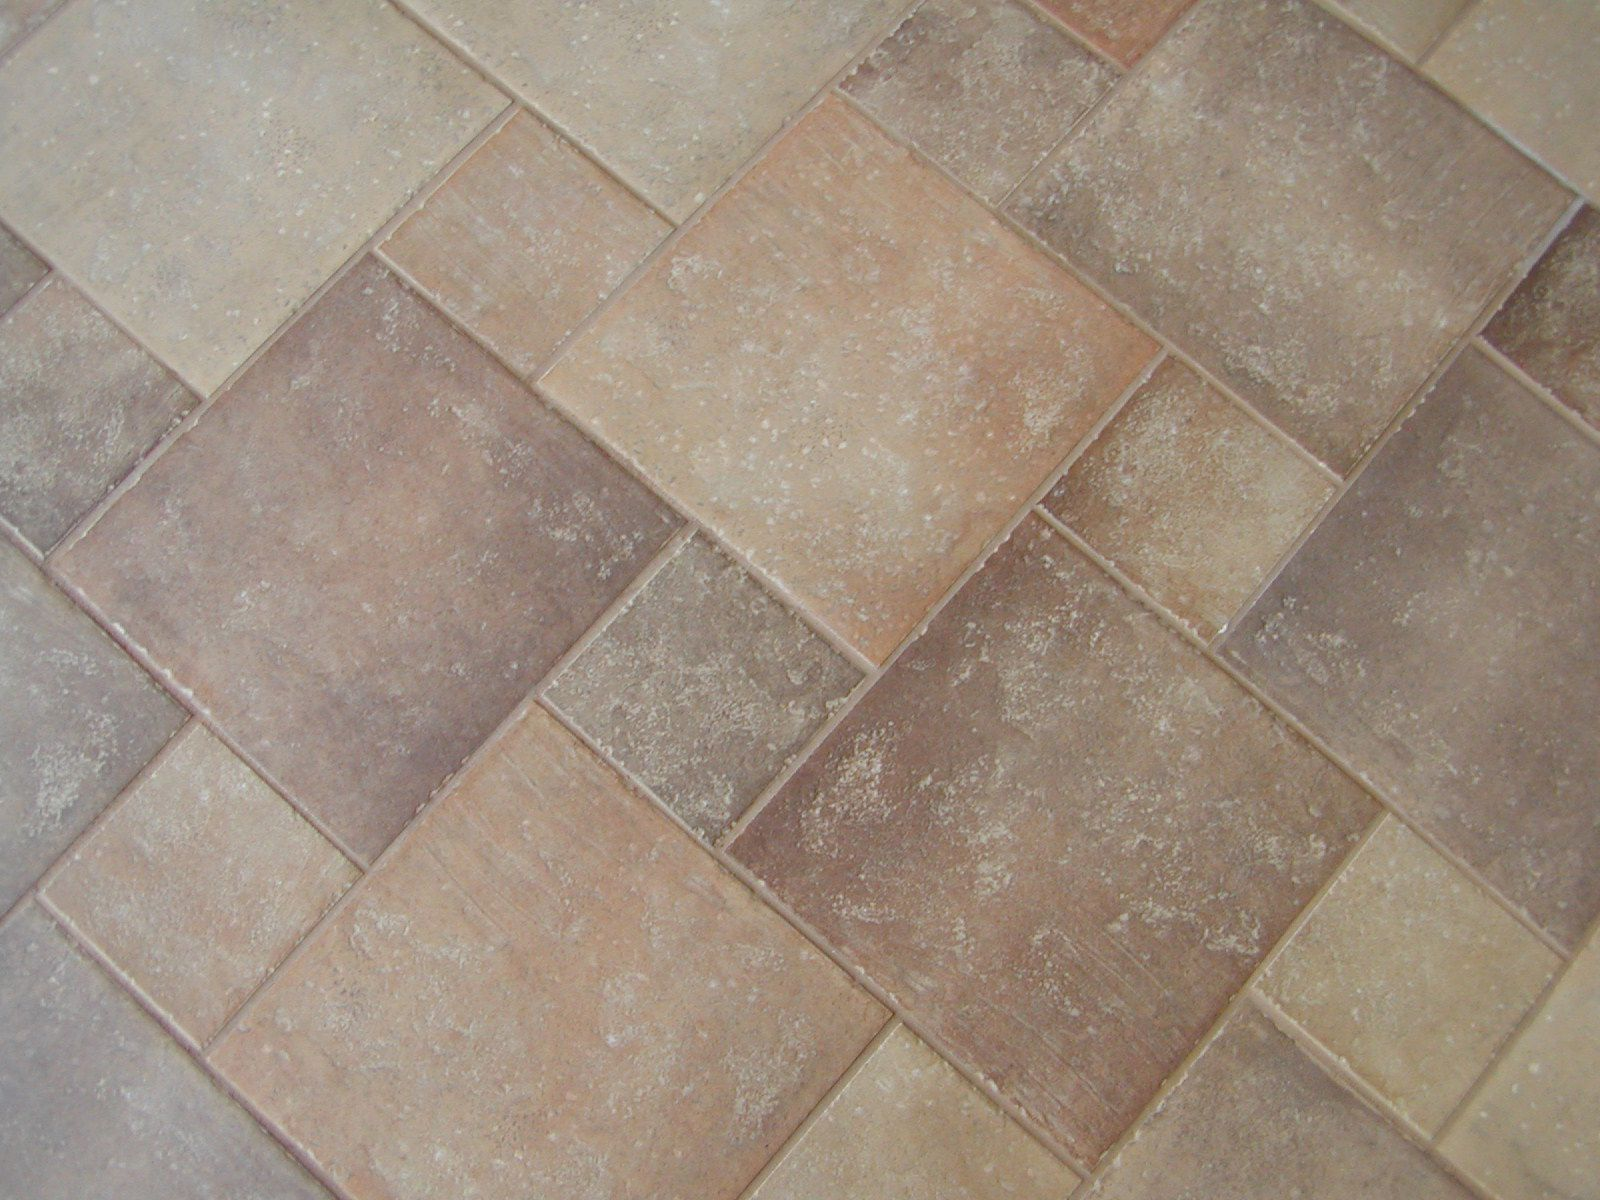 Natural slate floor tile dailygadgetfo Image collections